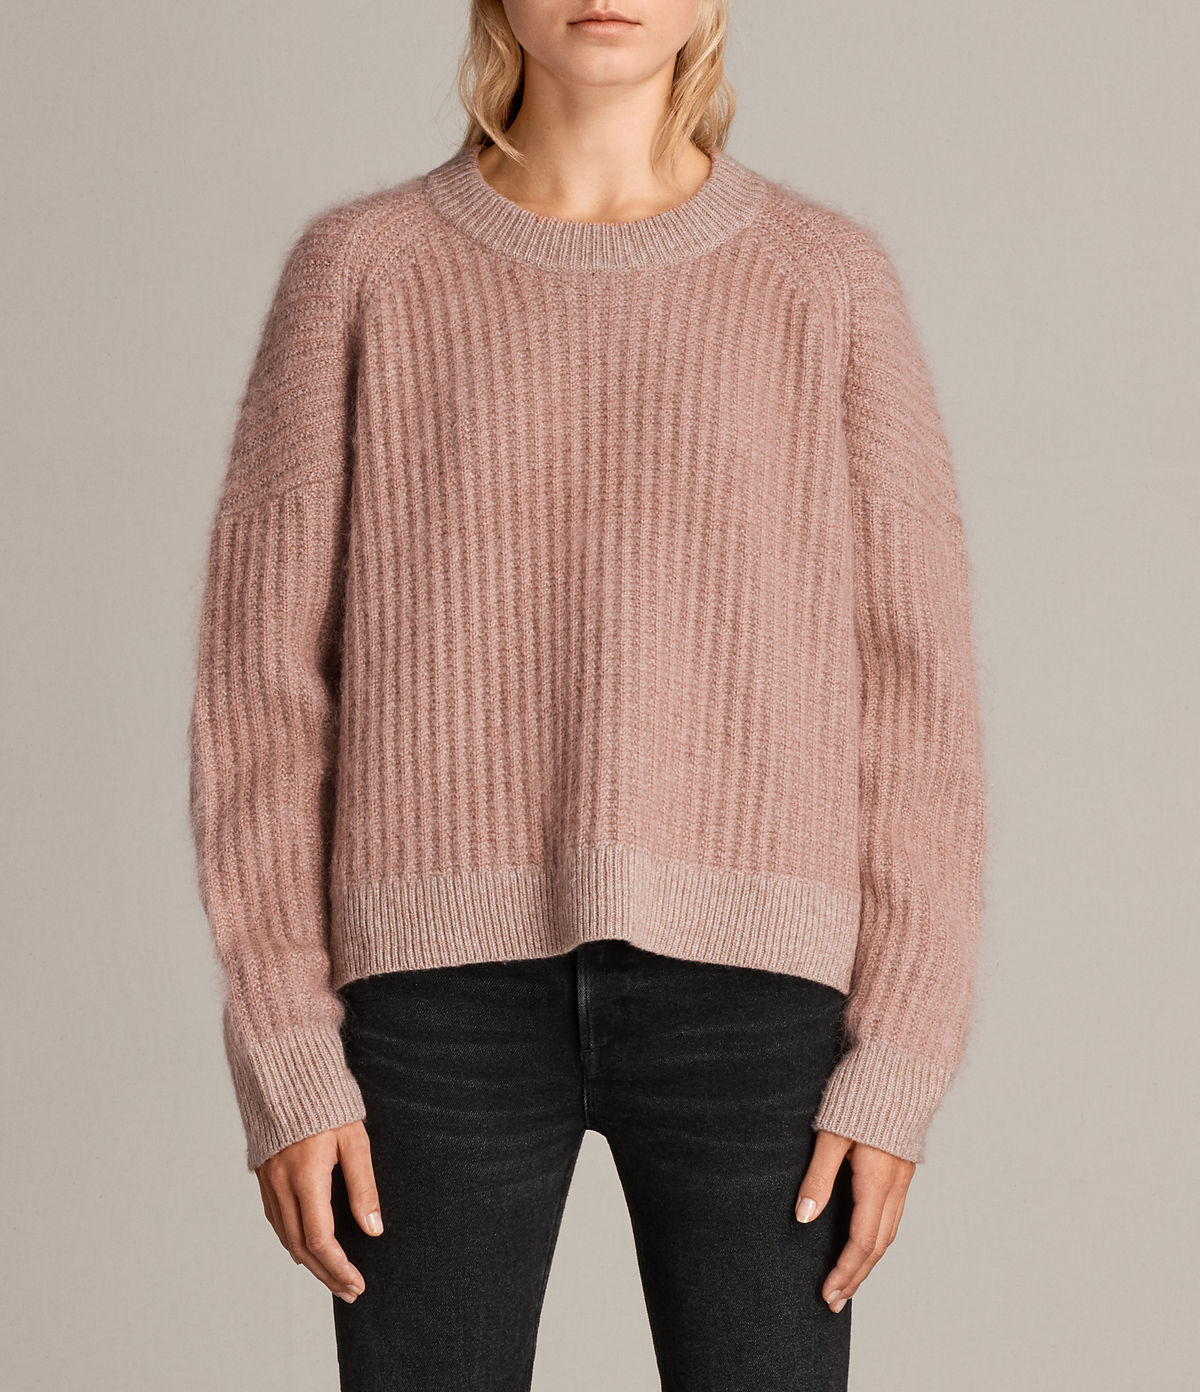 ade-cropped-jumper